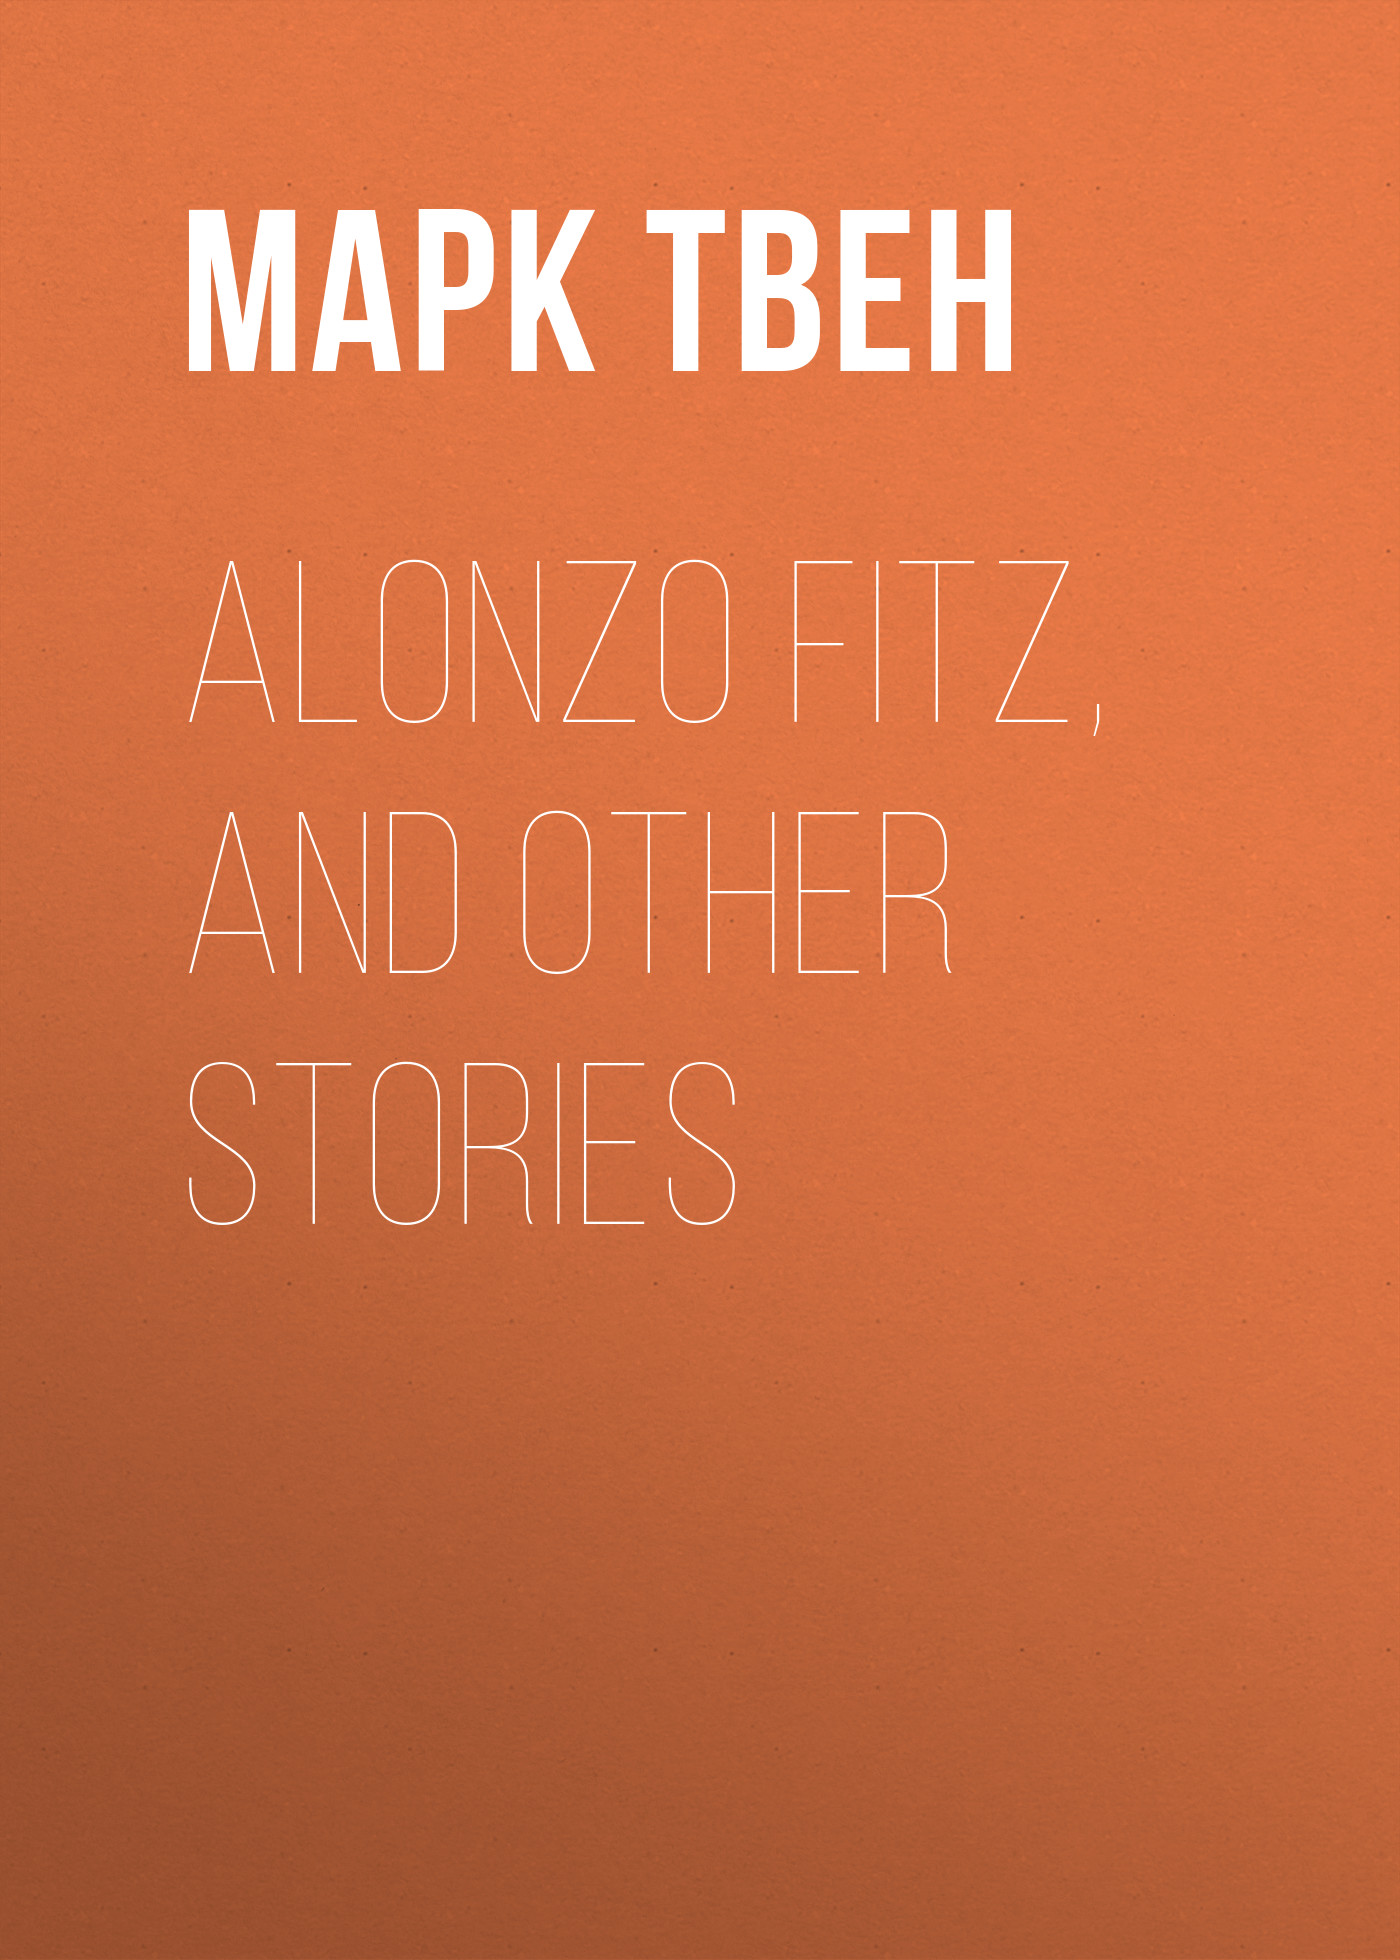 Марк Твен Alonzo Fitz, and Other Stories марк твен 30 000 dollar bequest and other stories